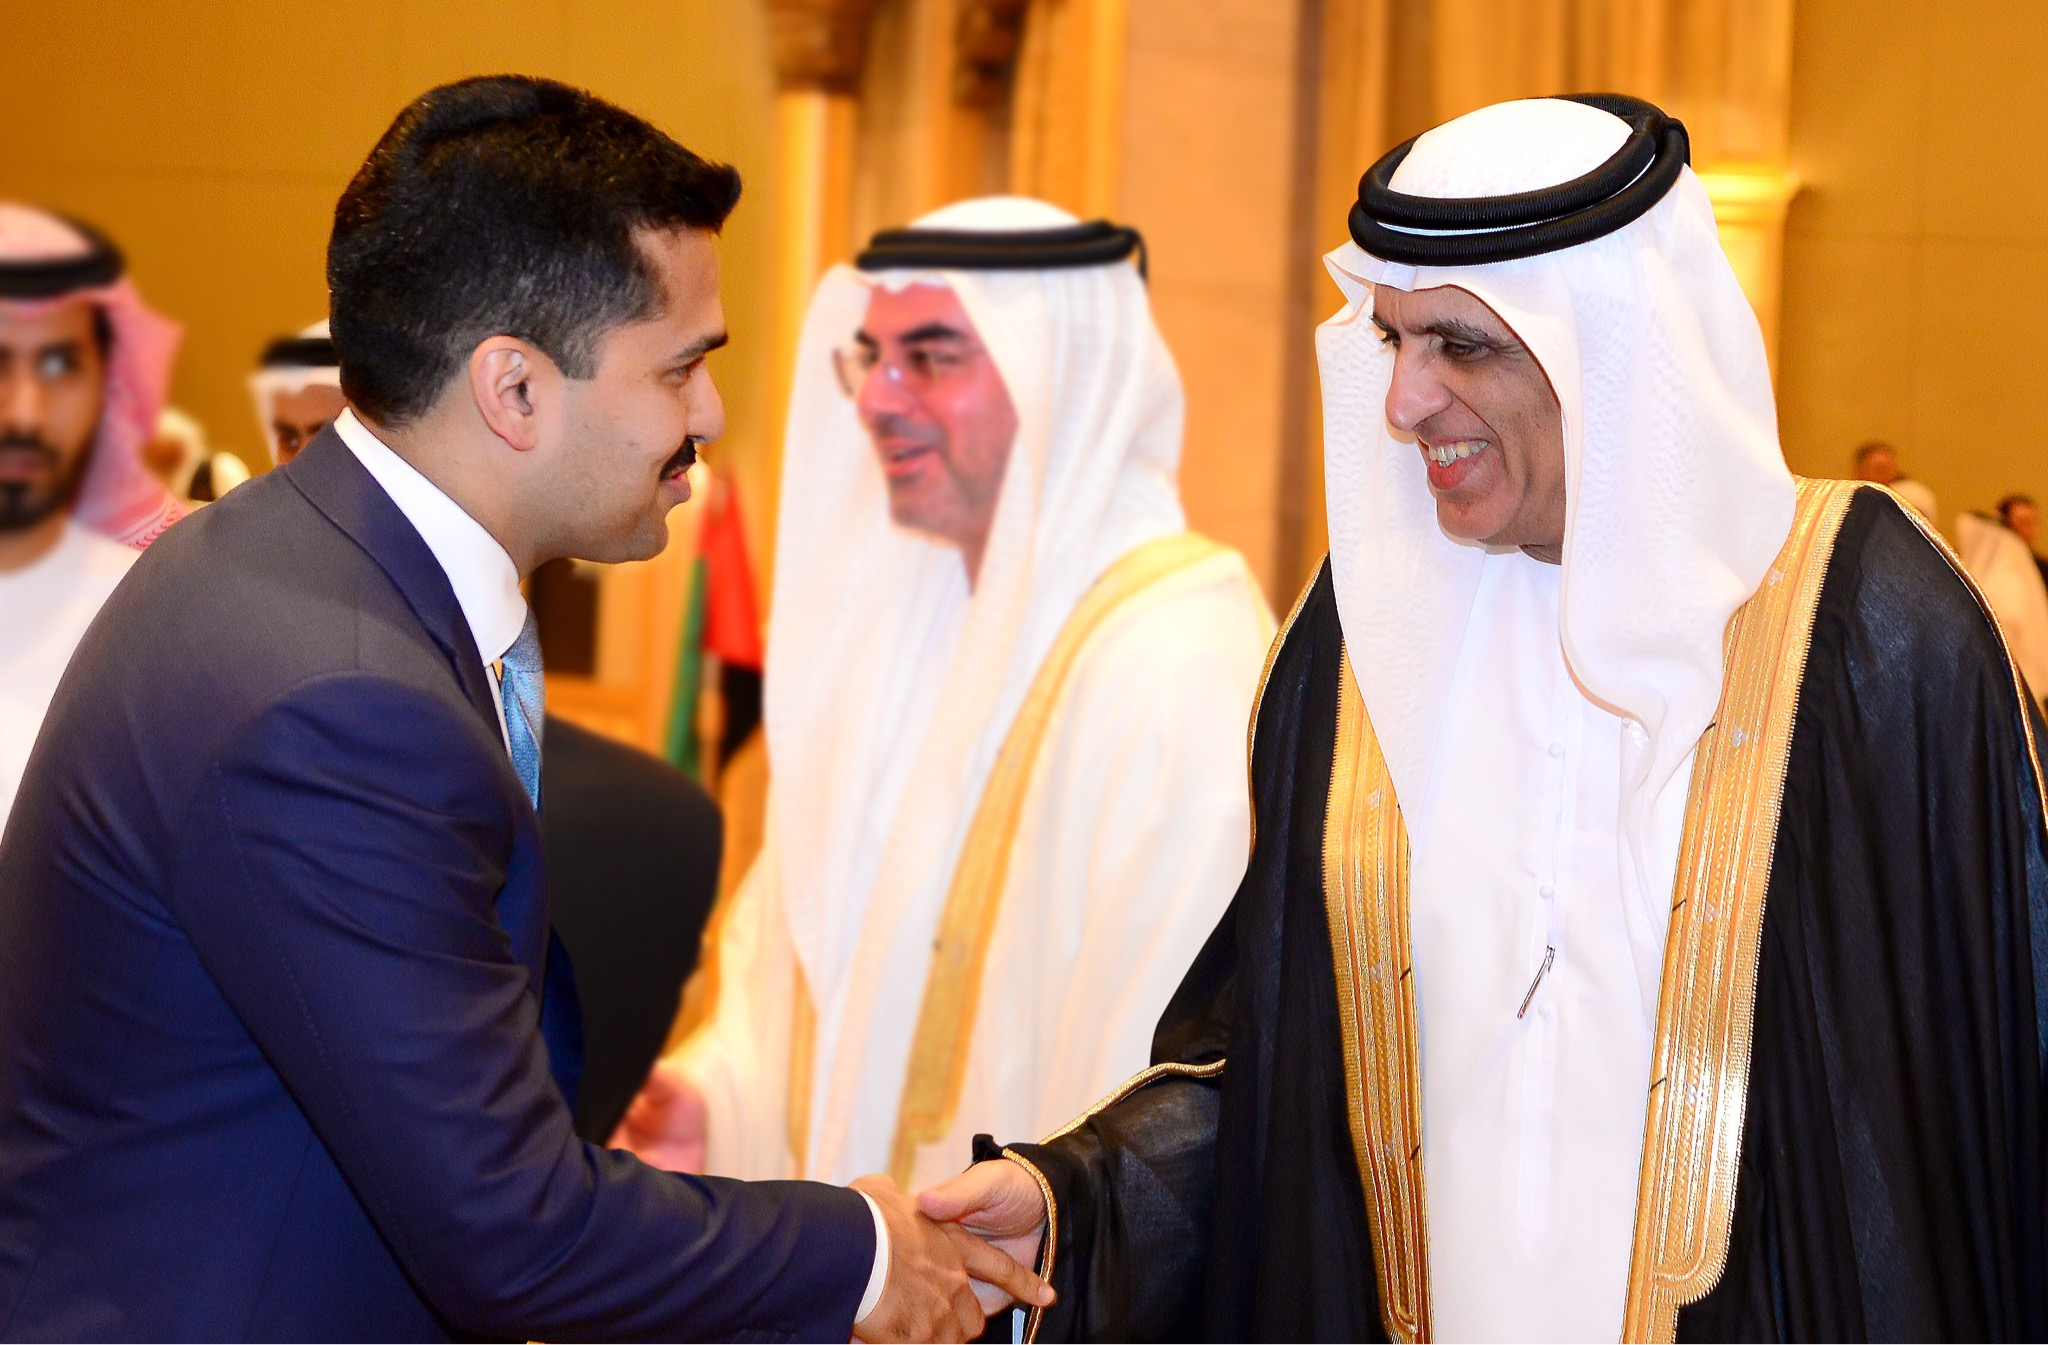 With H.H. Sheikh Saud bin Saqr Al Qasimi, Supreme Council Member and Ruler of Ras al-Khaimah